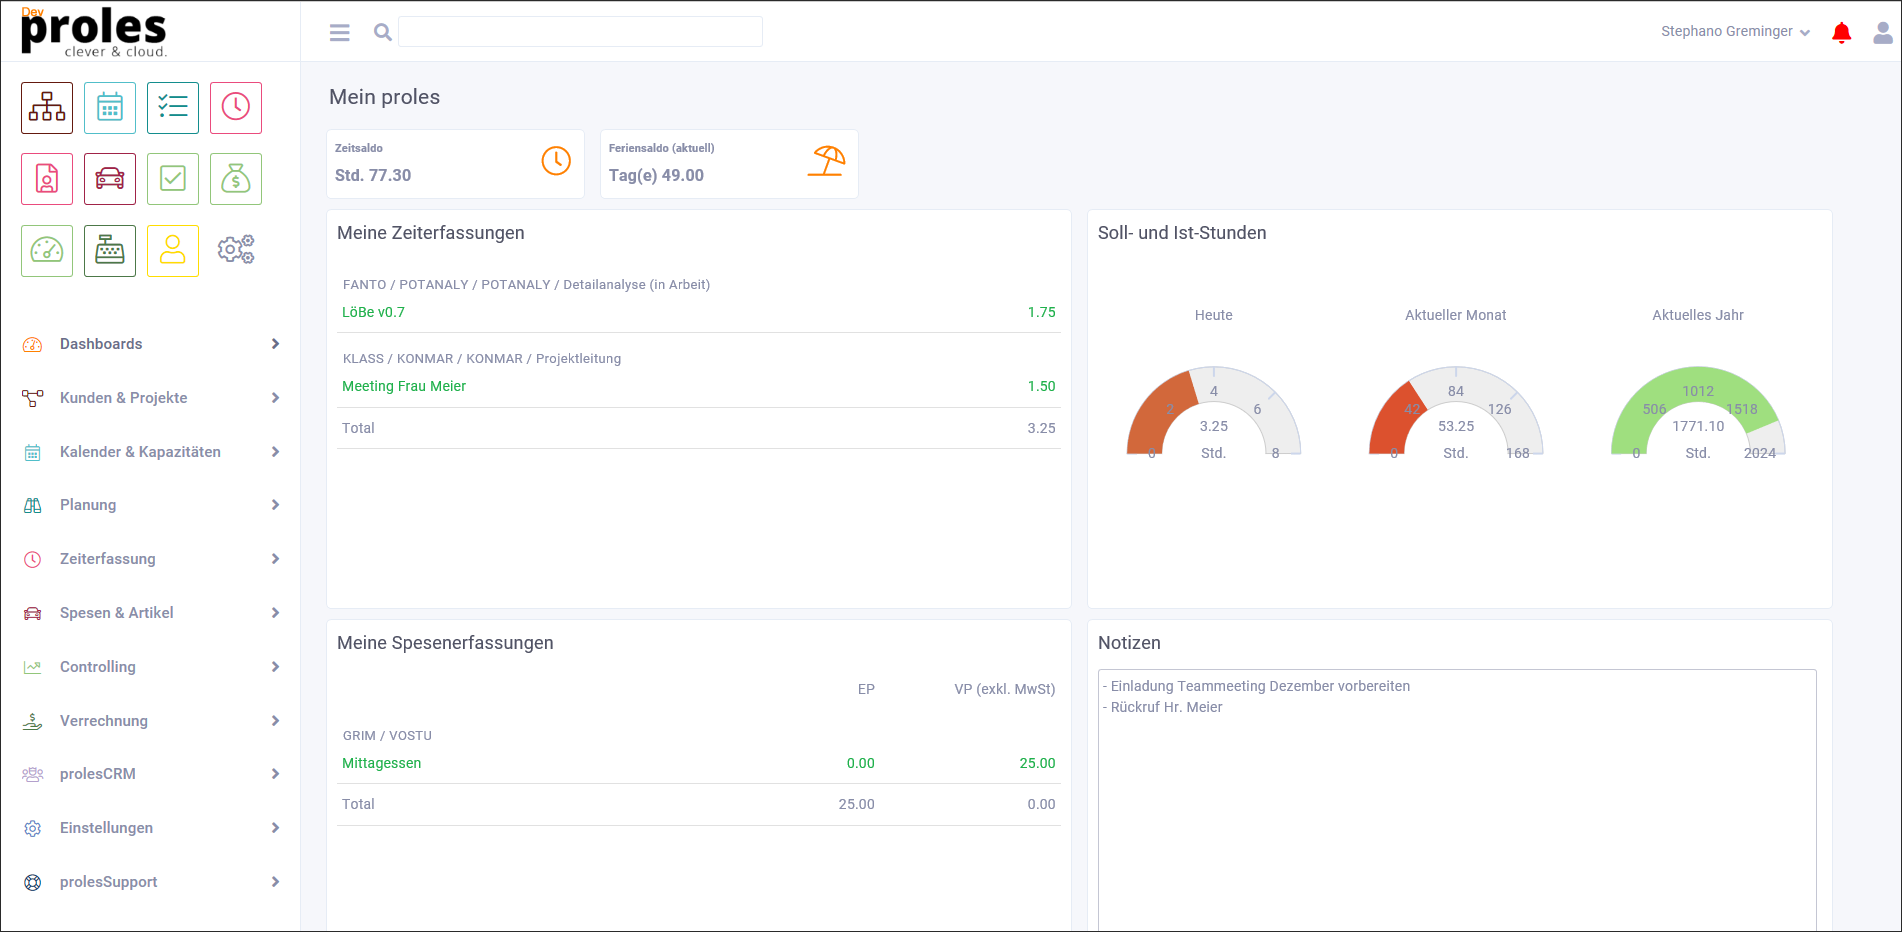 proles Dashboard Release 4